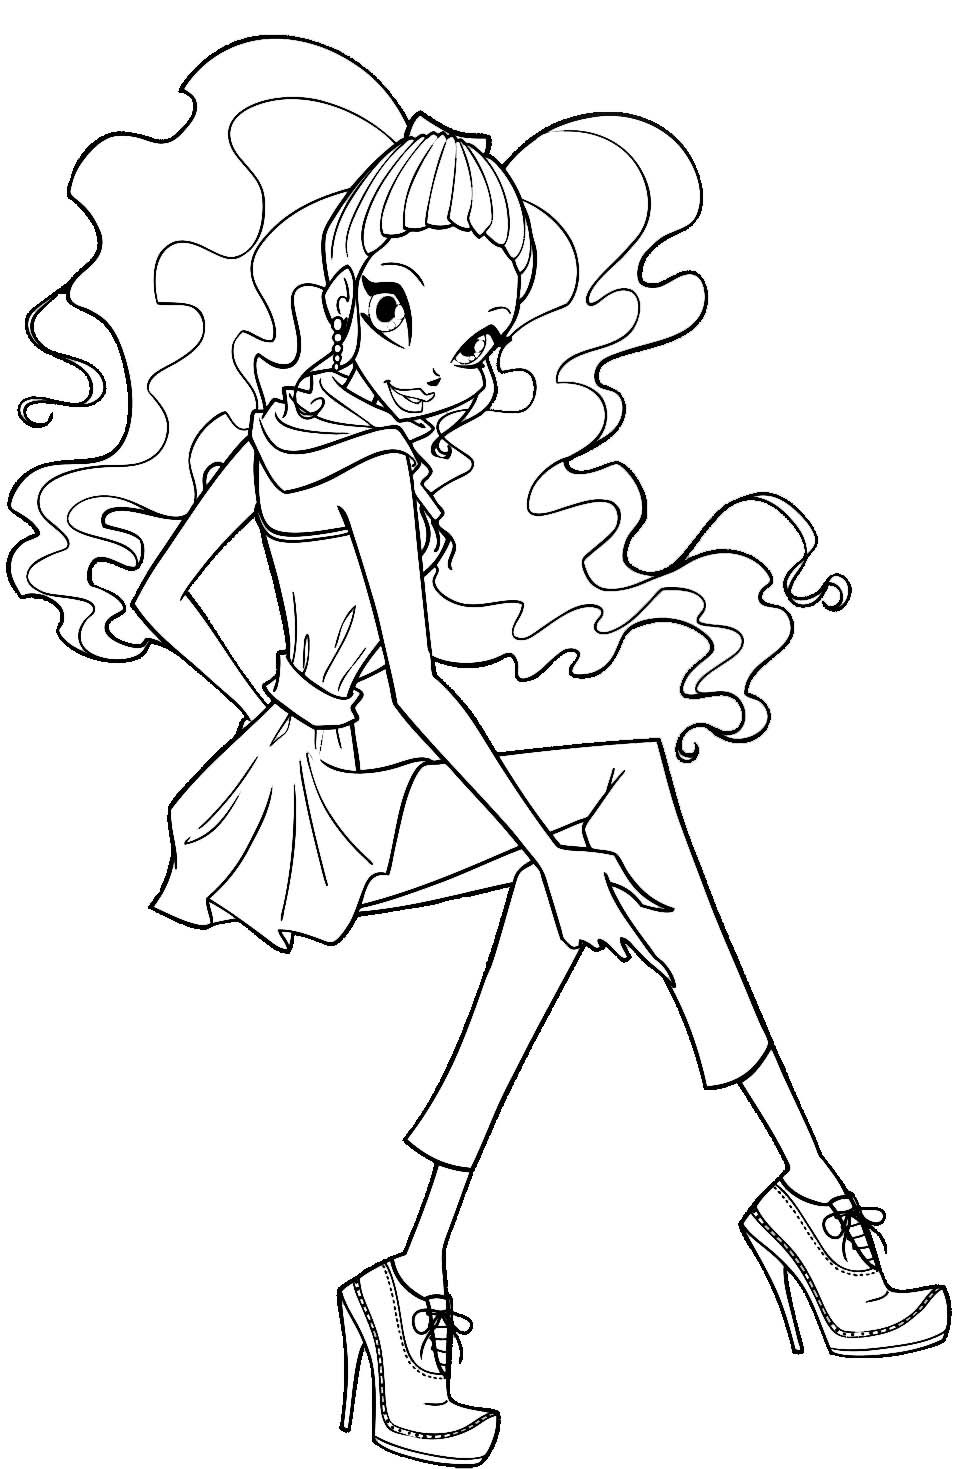 layla winx coloring pages - photo#13